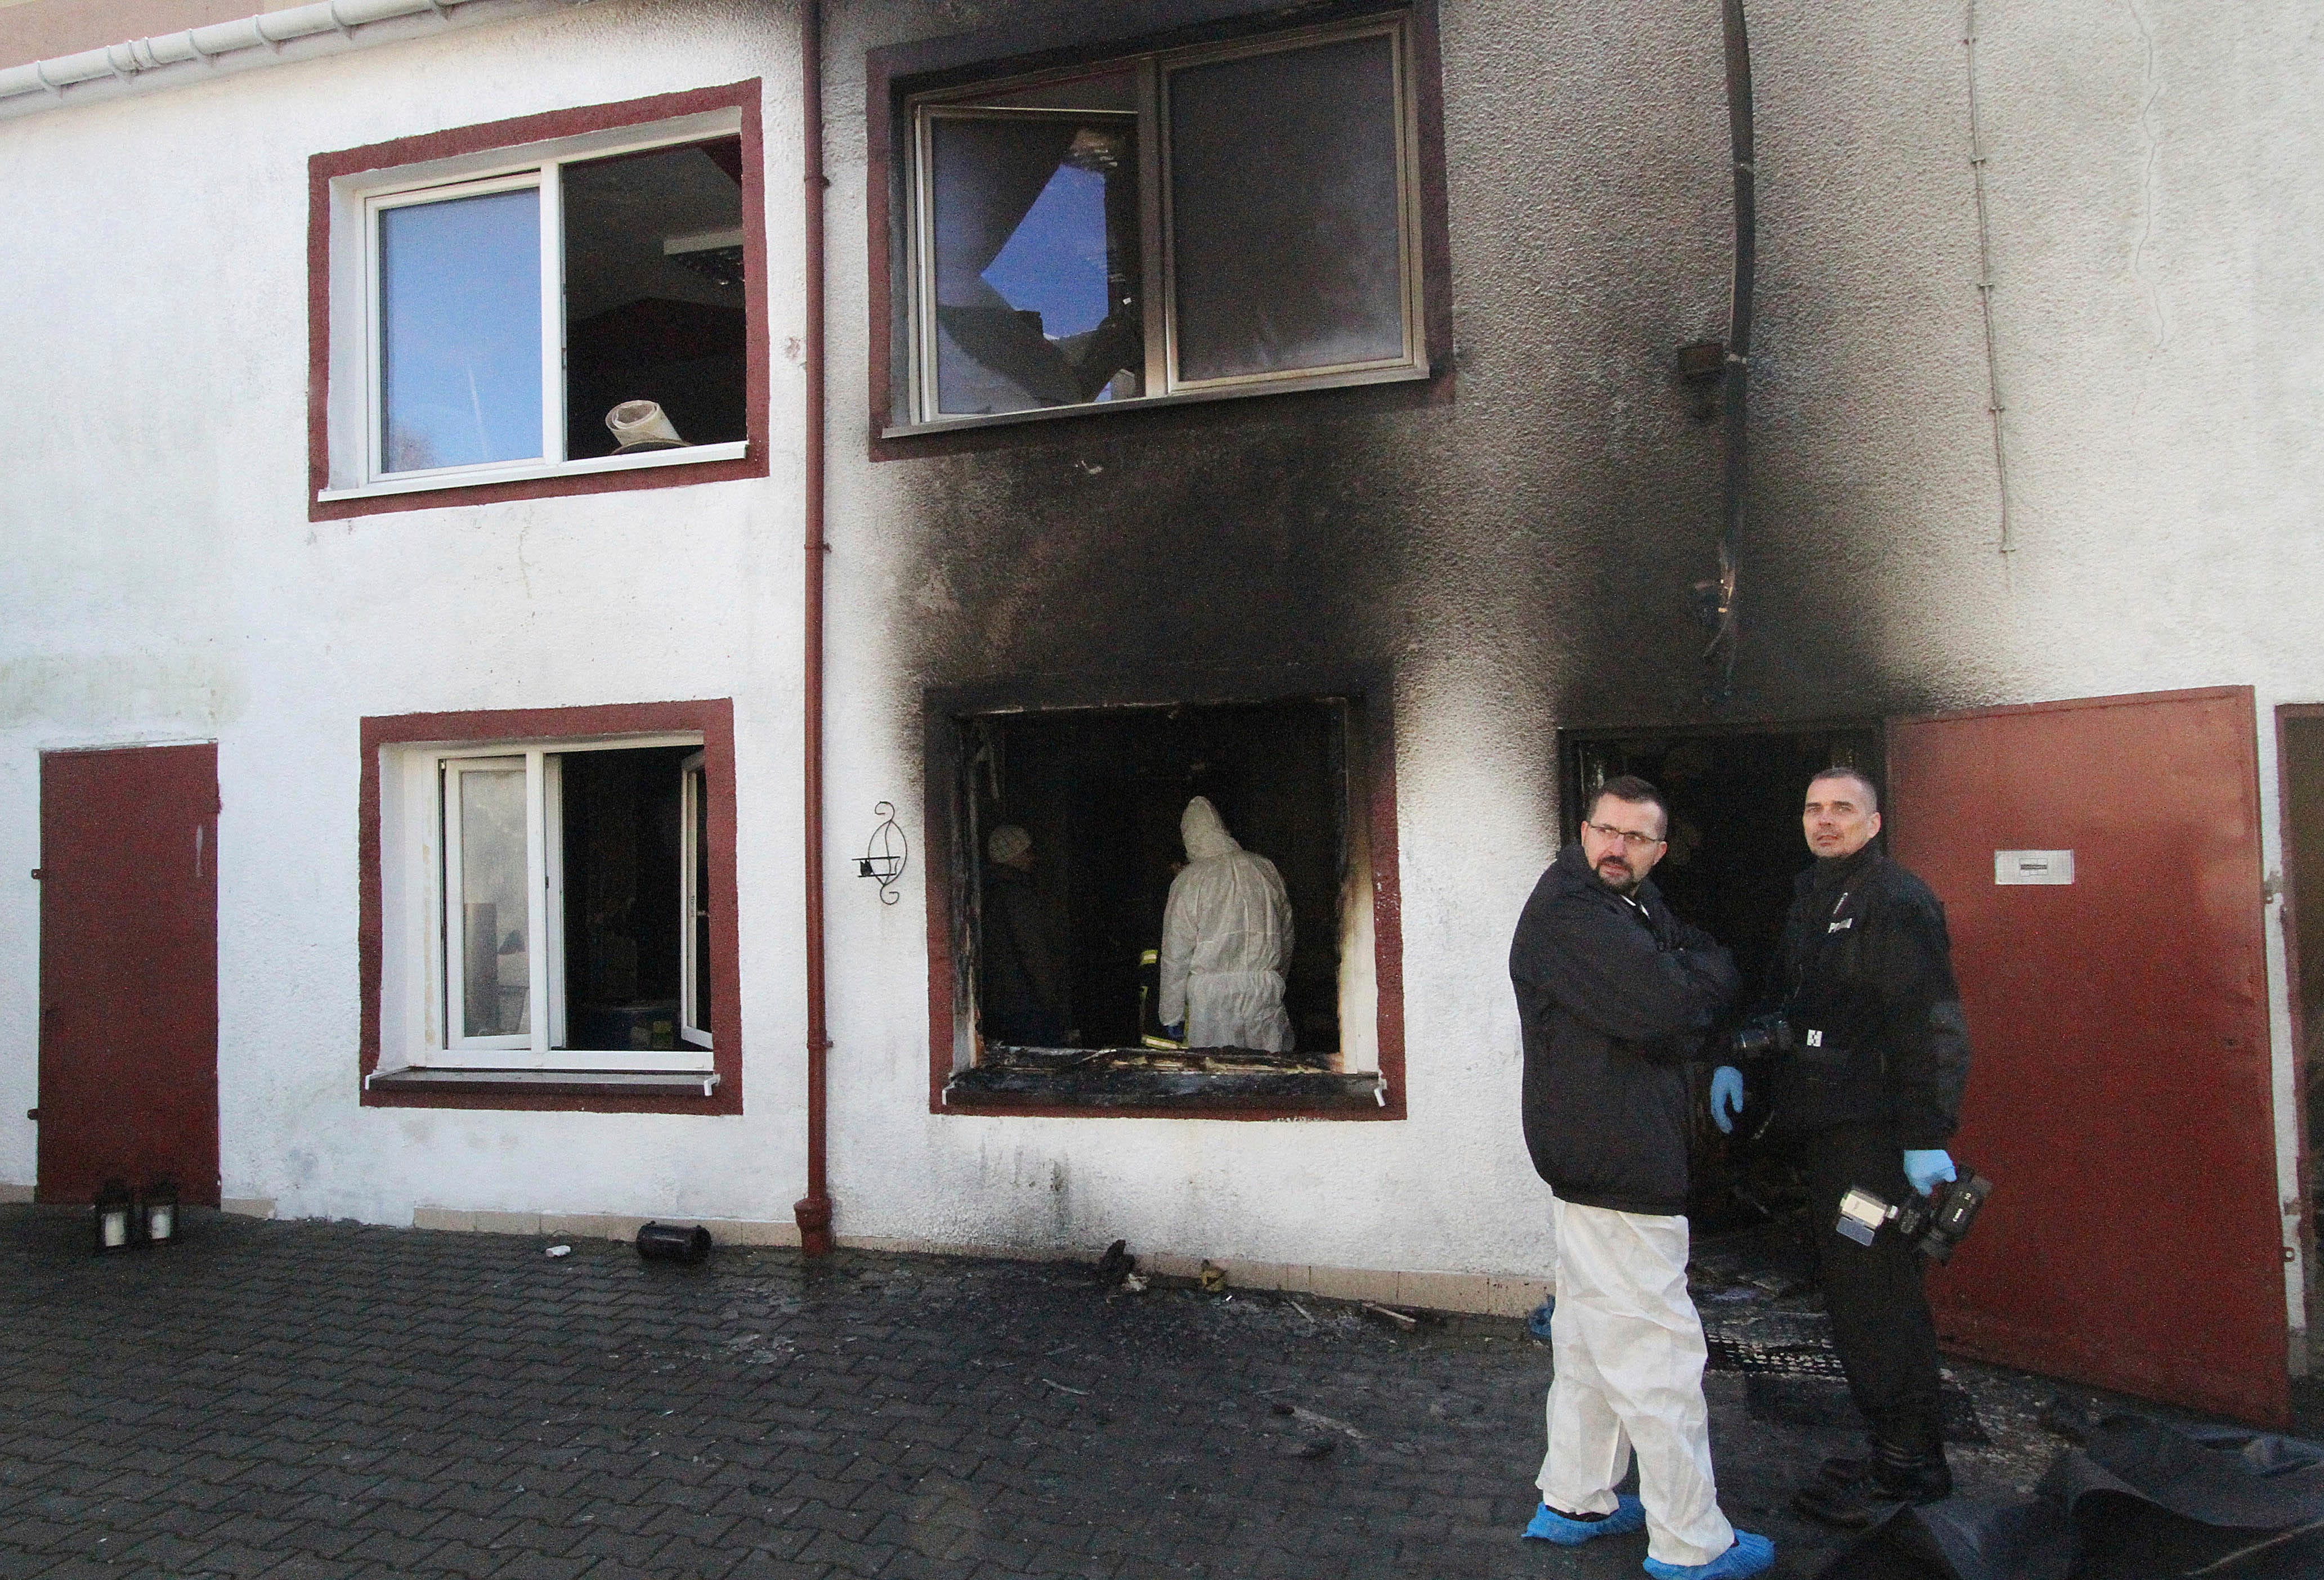 Poland shuts down 13 escape rooms after 5 teens killed in fire